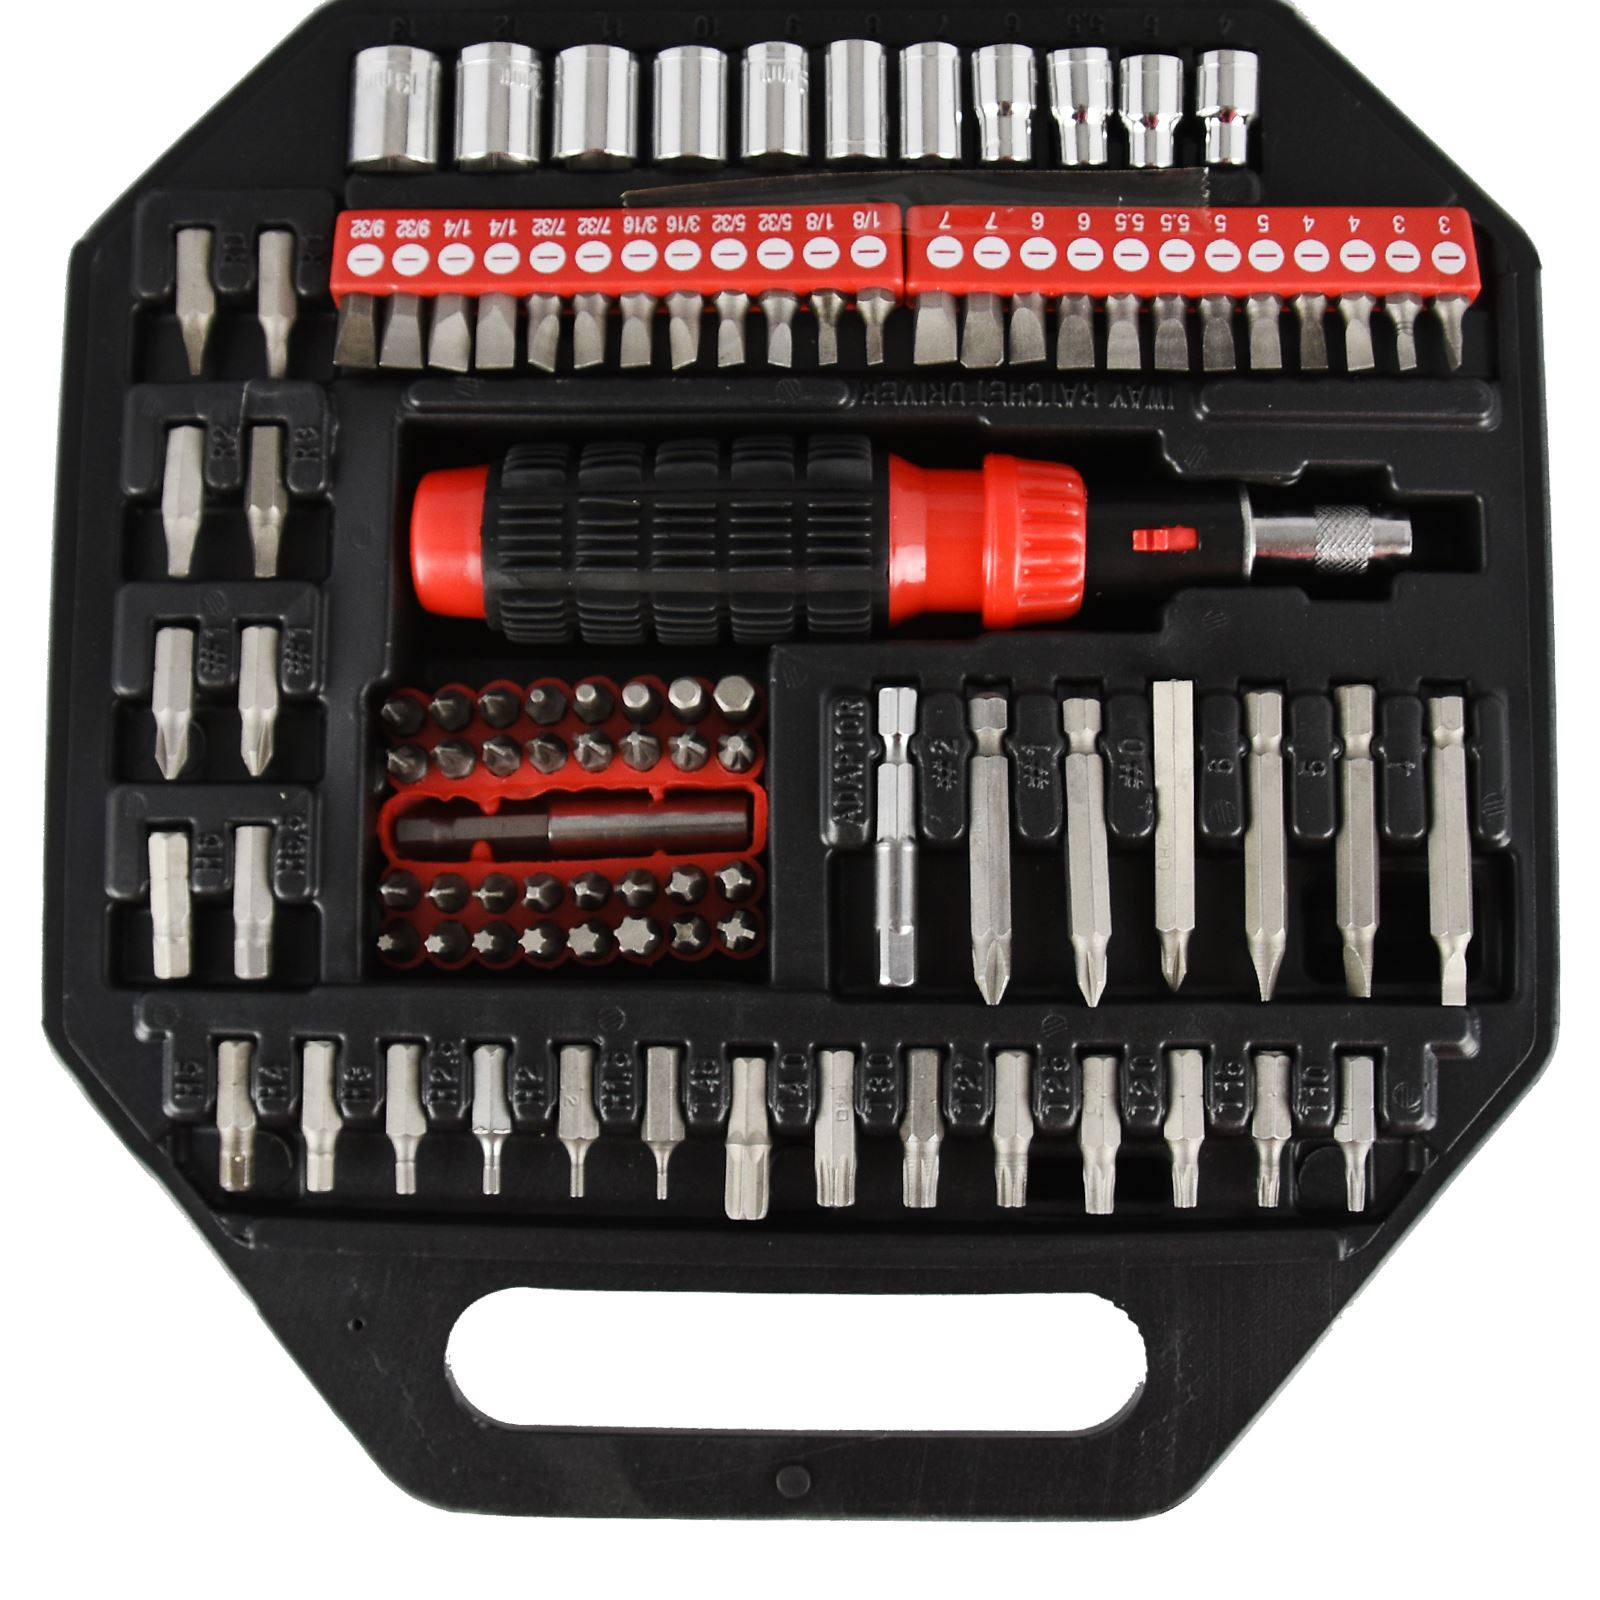 101pc assorted screwdriver bit set ratchet driver tool kit strong carry case. Black Bedroom Furniture Sets. Home Design Ideas